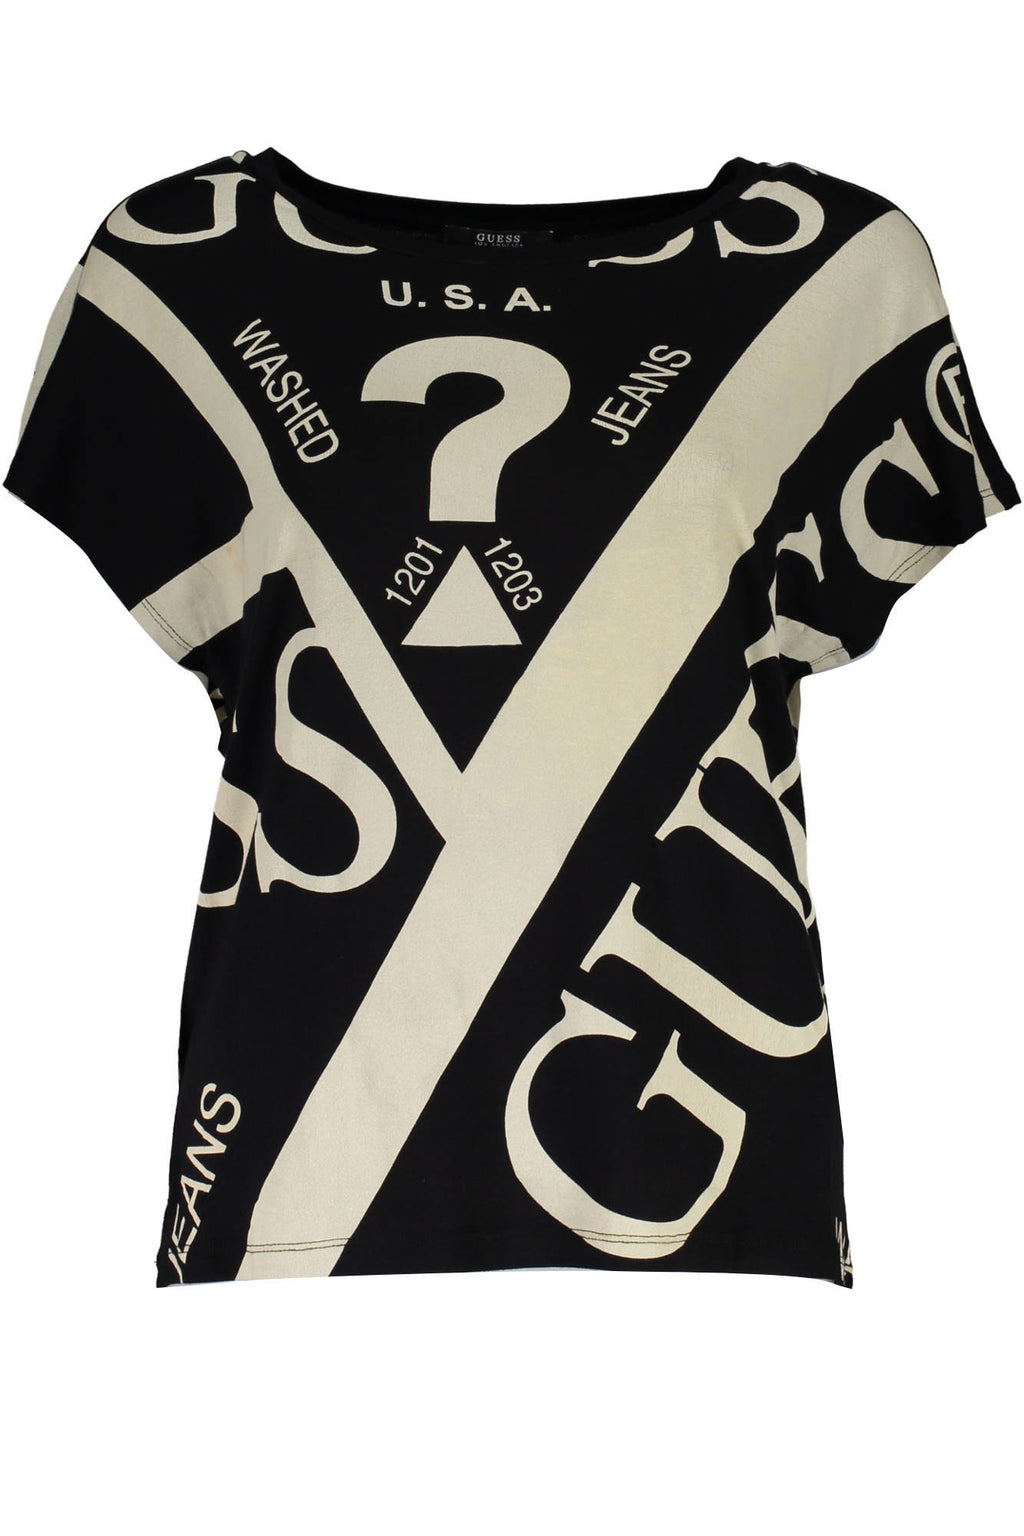 Guess Jeans  Women T-Shirt